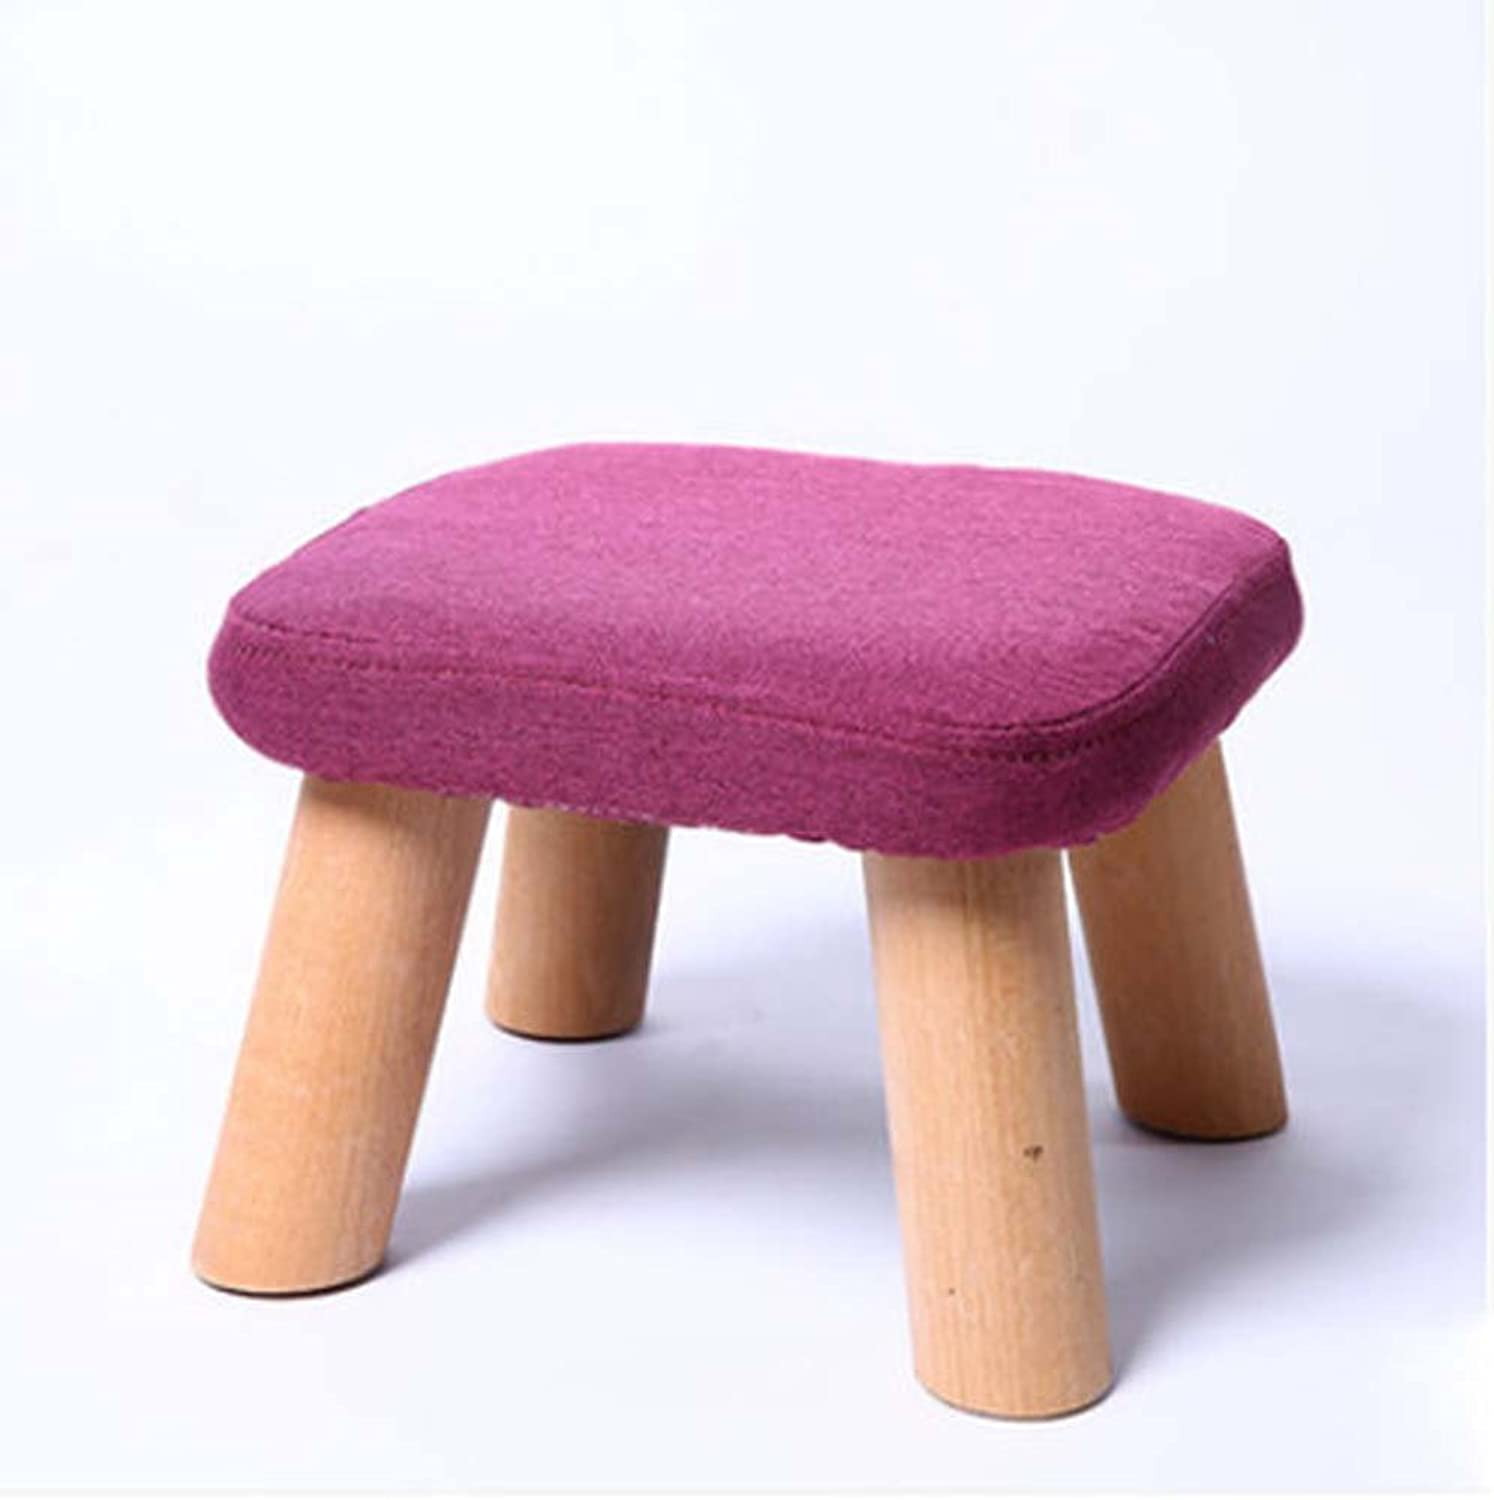 ZHANGRONG- Stool Round Stool Solid Wood Fashion Square Stool Home Coffee Table Stool Cloth Sofa Stool (a Variety of Styles Optional) (color   D)